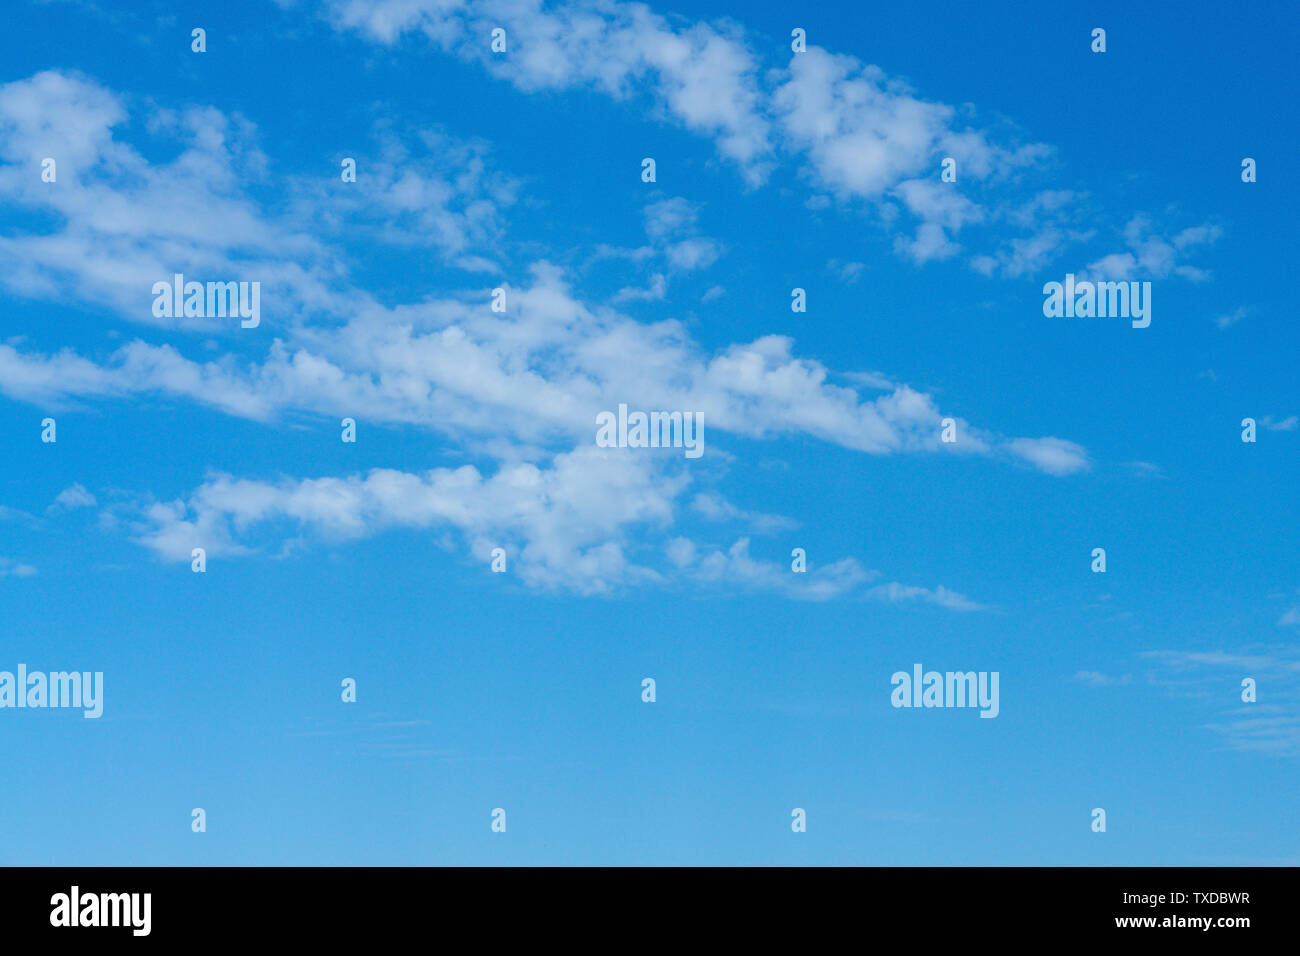 Beautiful cirrus clouds on bright blue sky. - Stock Image